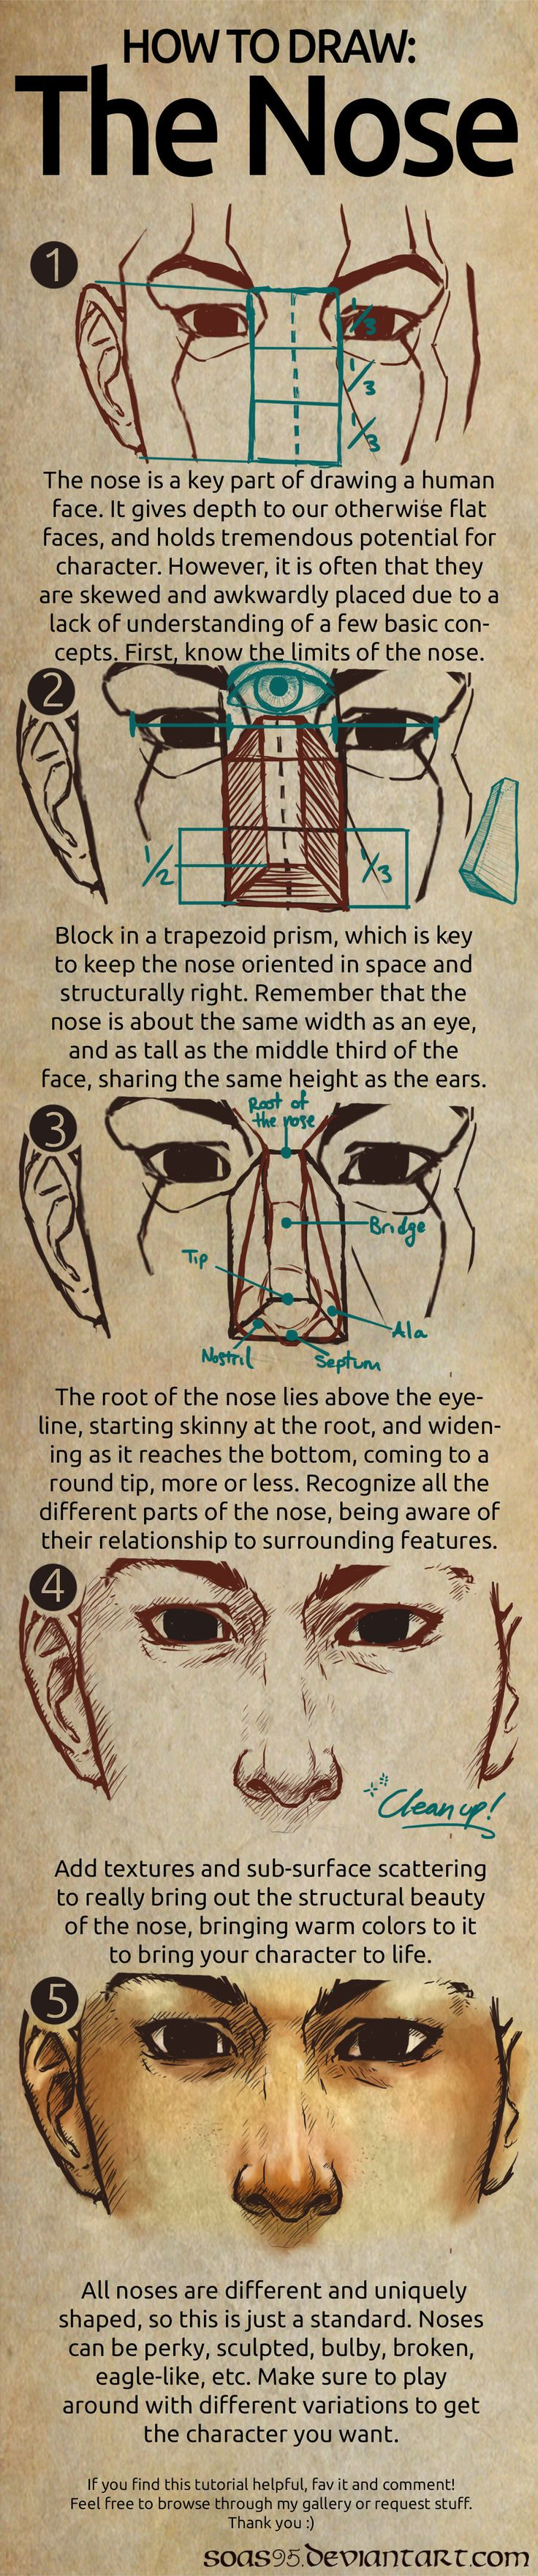 Human Nose- TUTORIAL by soas95.deviantart.com on @deviantART